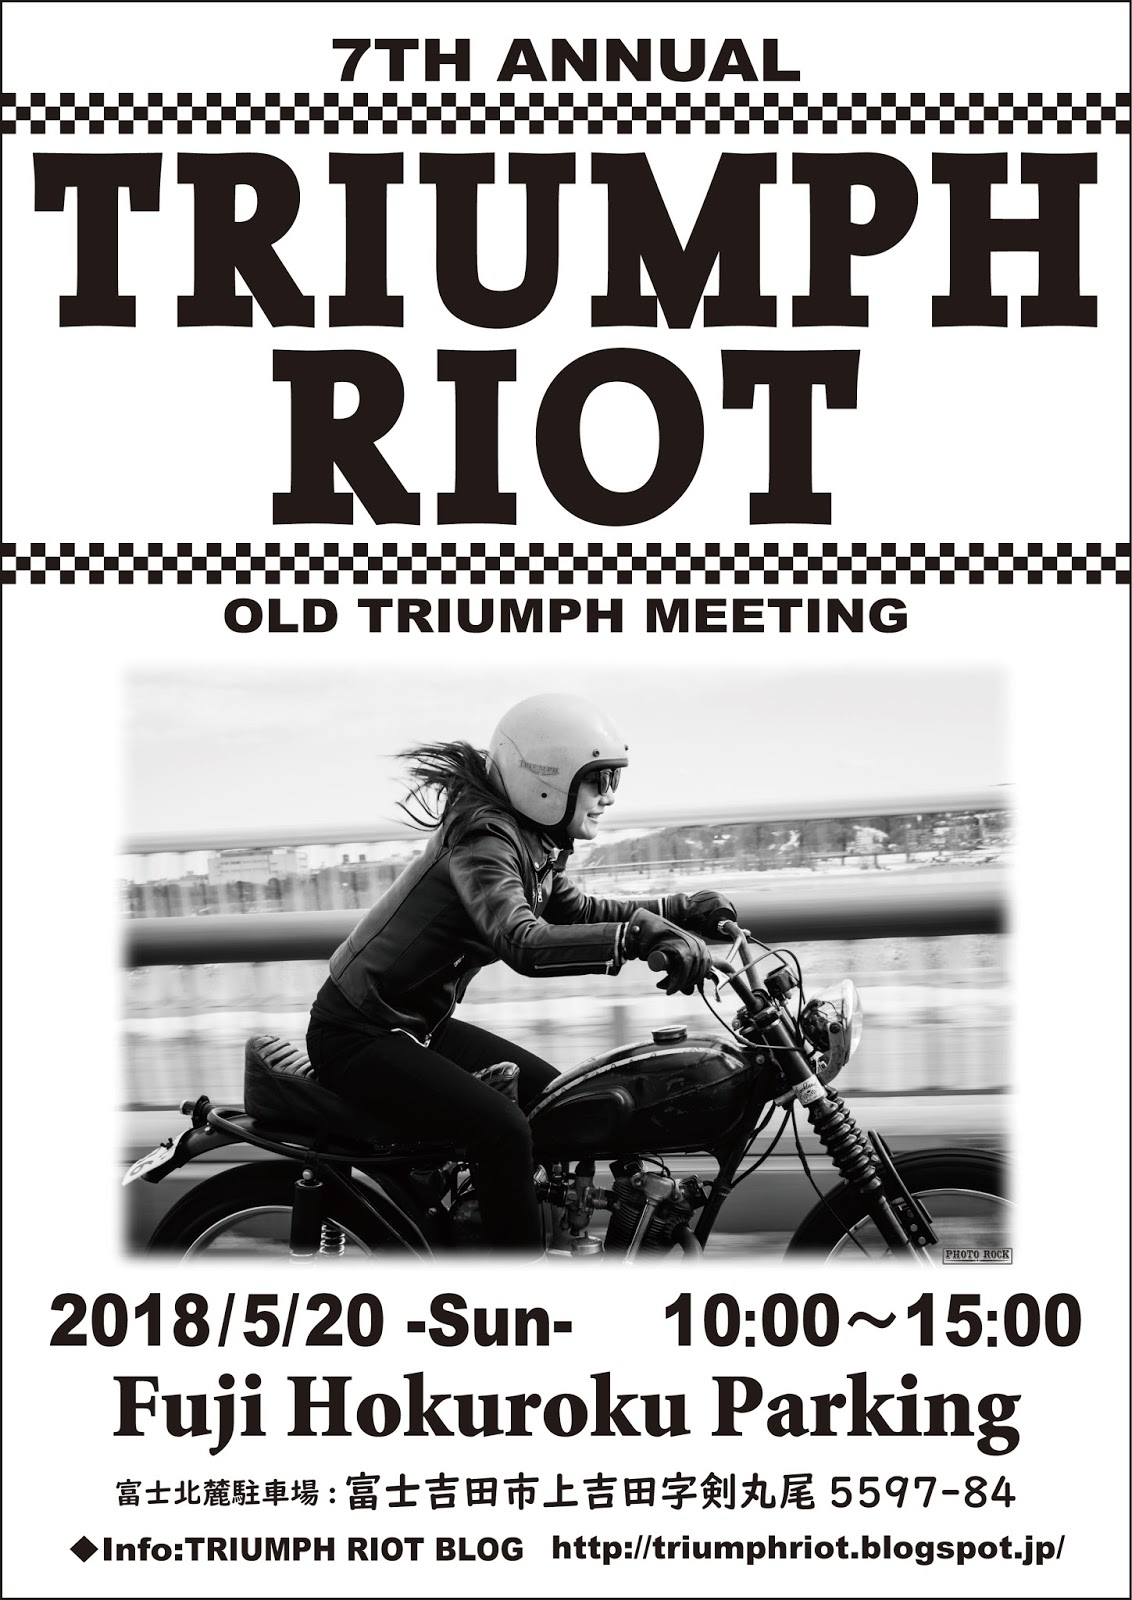 TRIUMPH RIOT 7th Photo